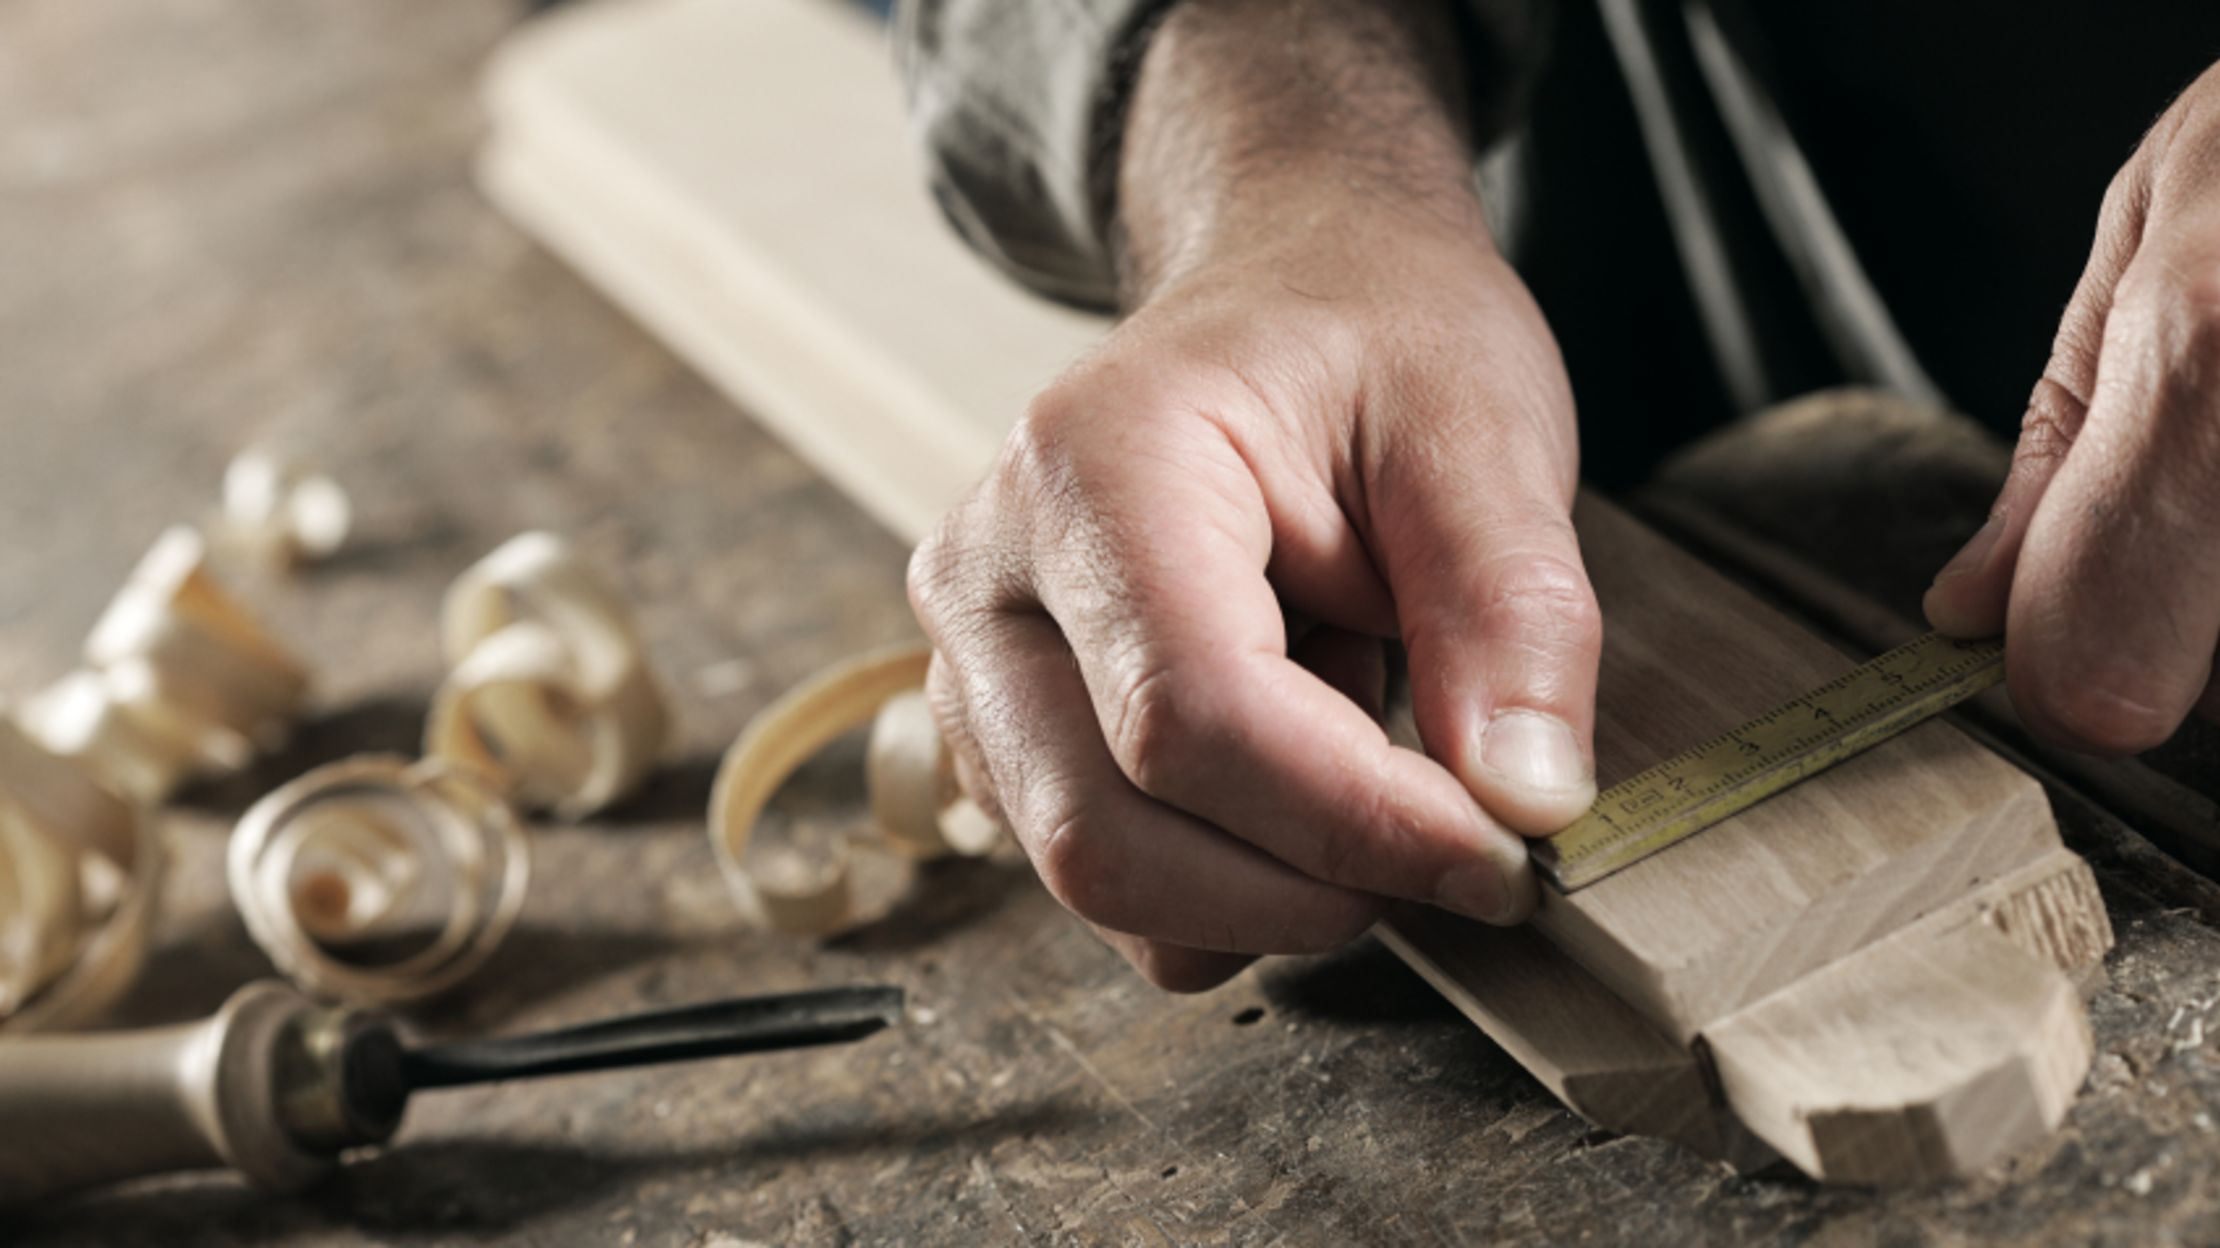 Handcrafted and Homemade Goods